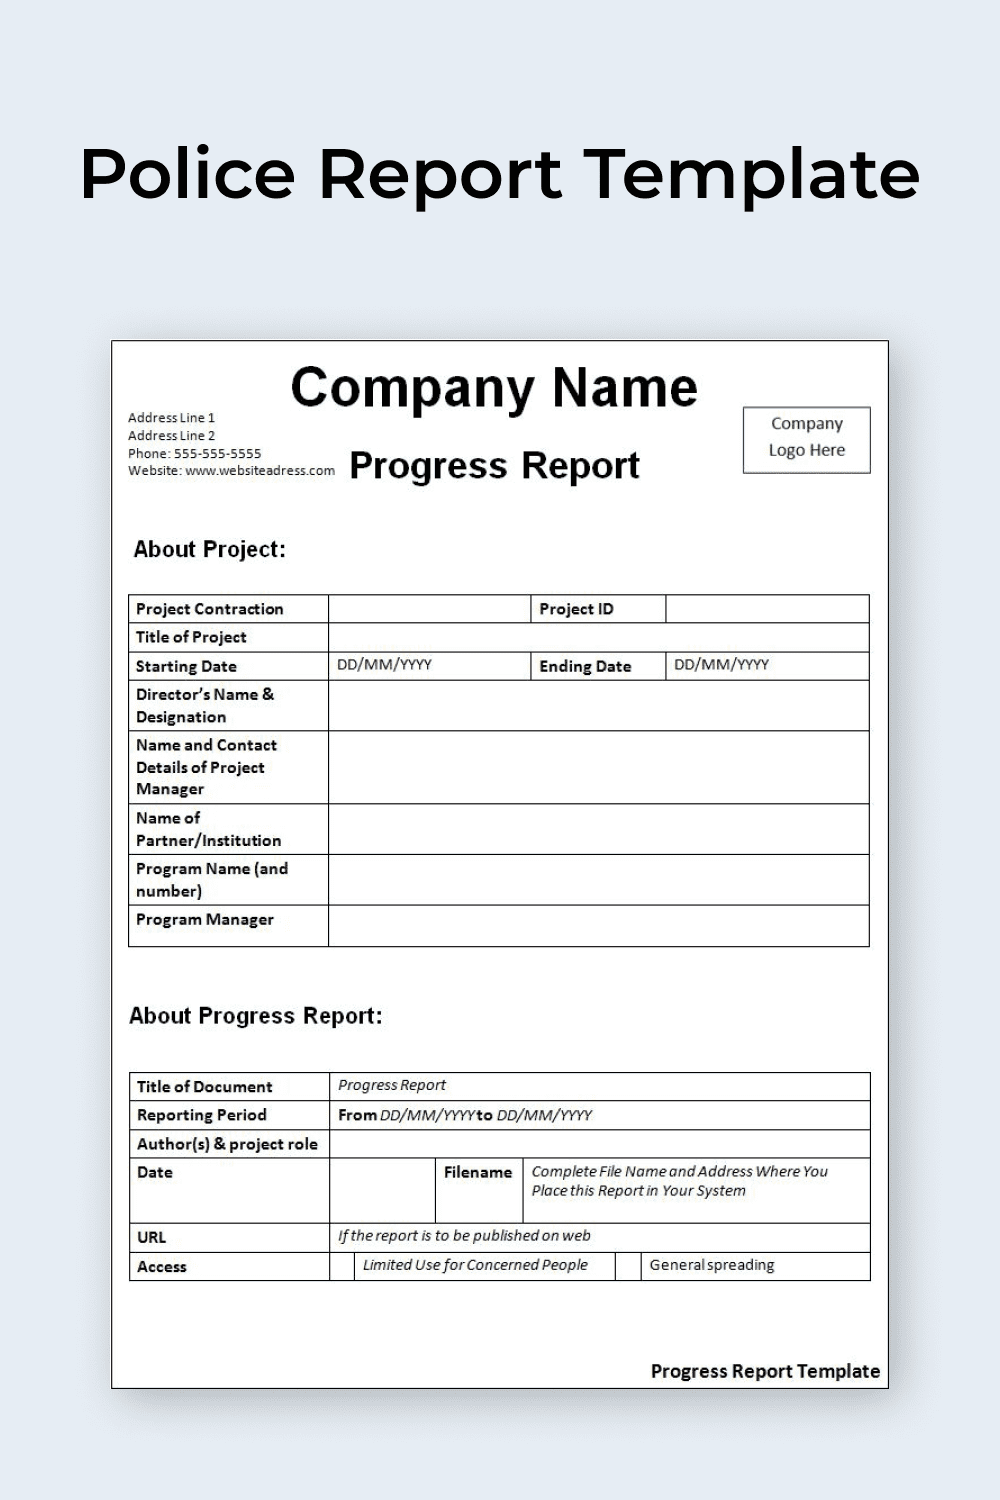 Police Report Template.